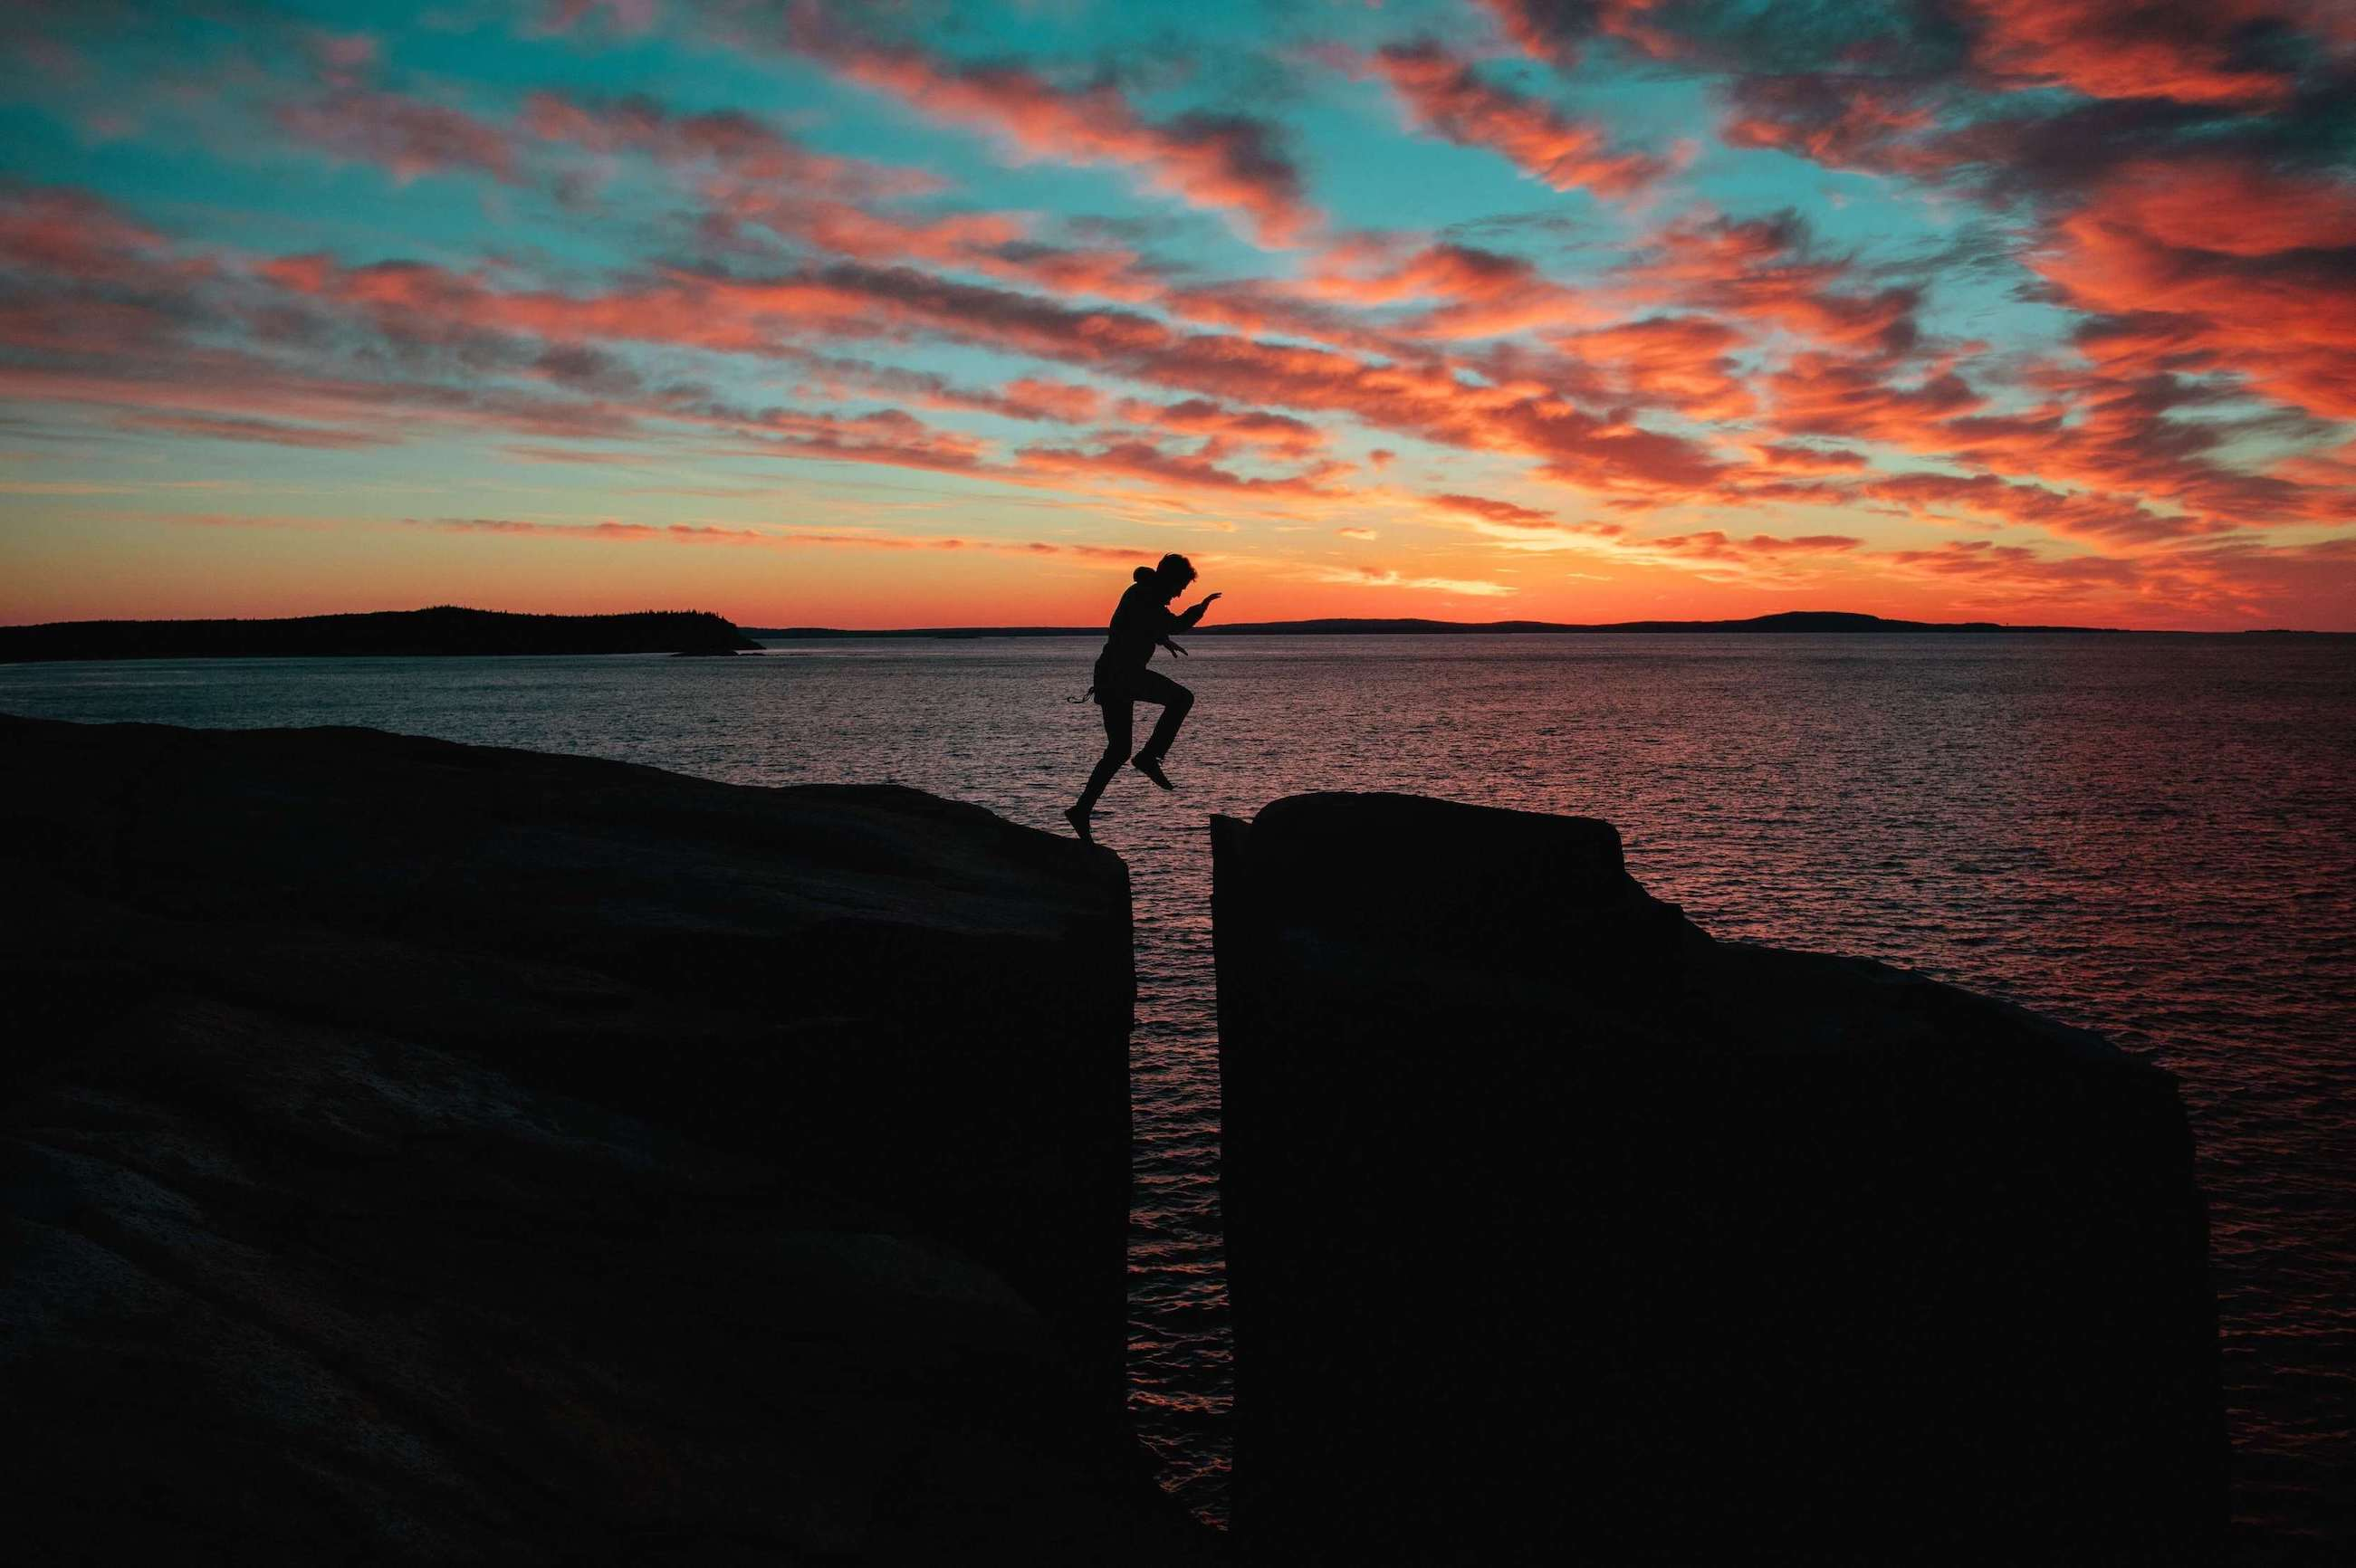 A man jumping across two rocks next to the sea during sunset